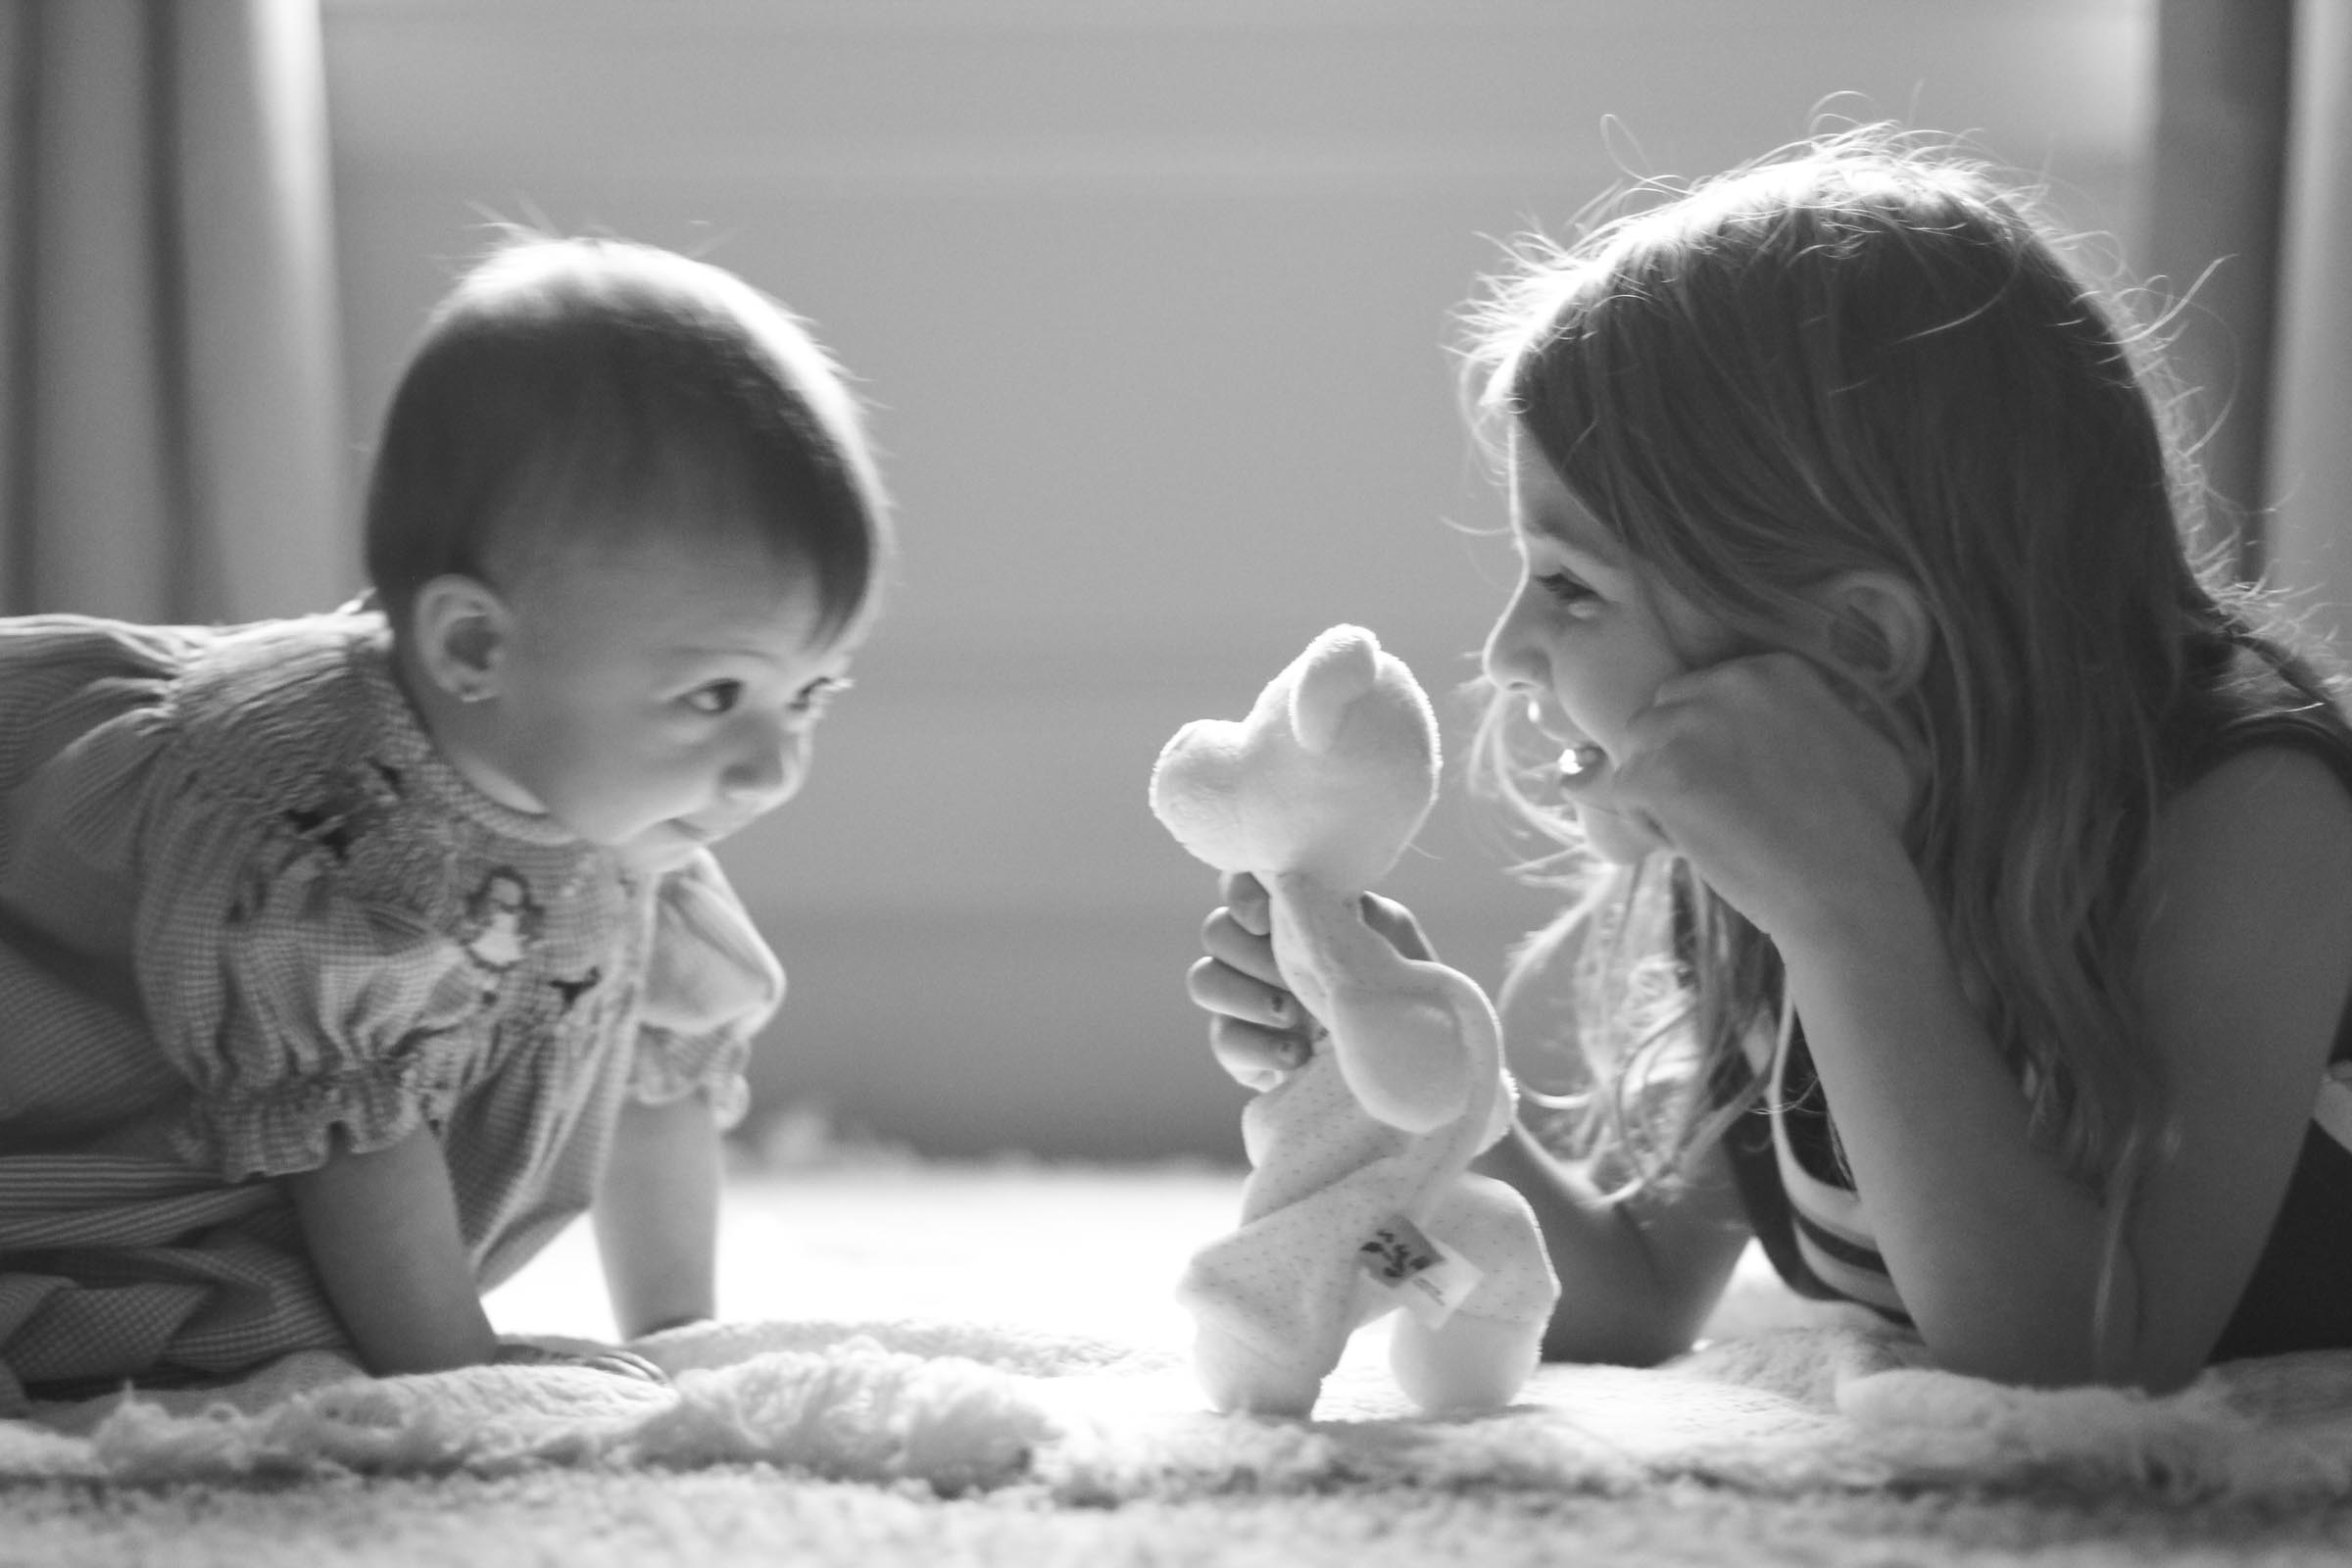 ashley-landry-photography-raymond-09-2016-19-of-41